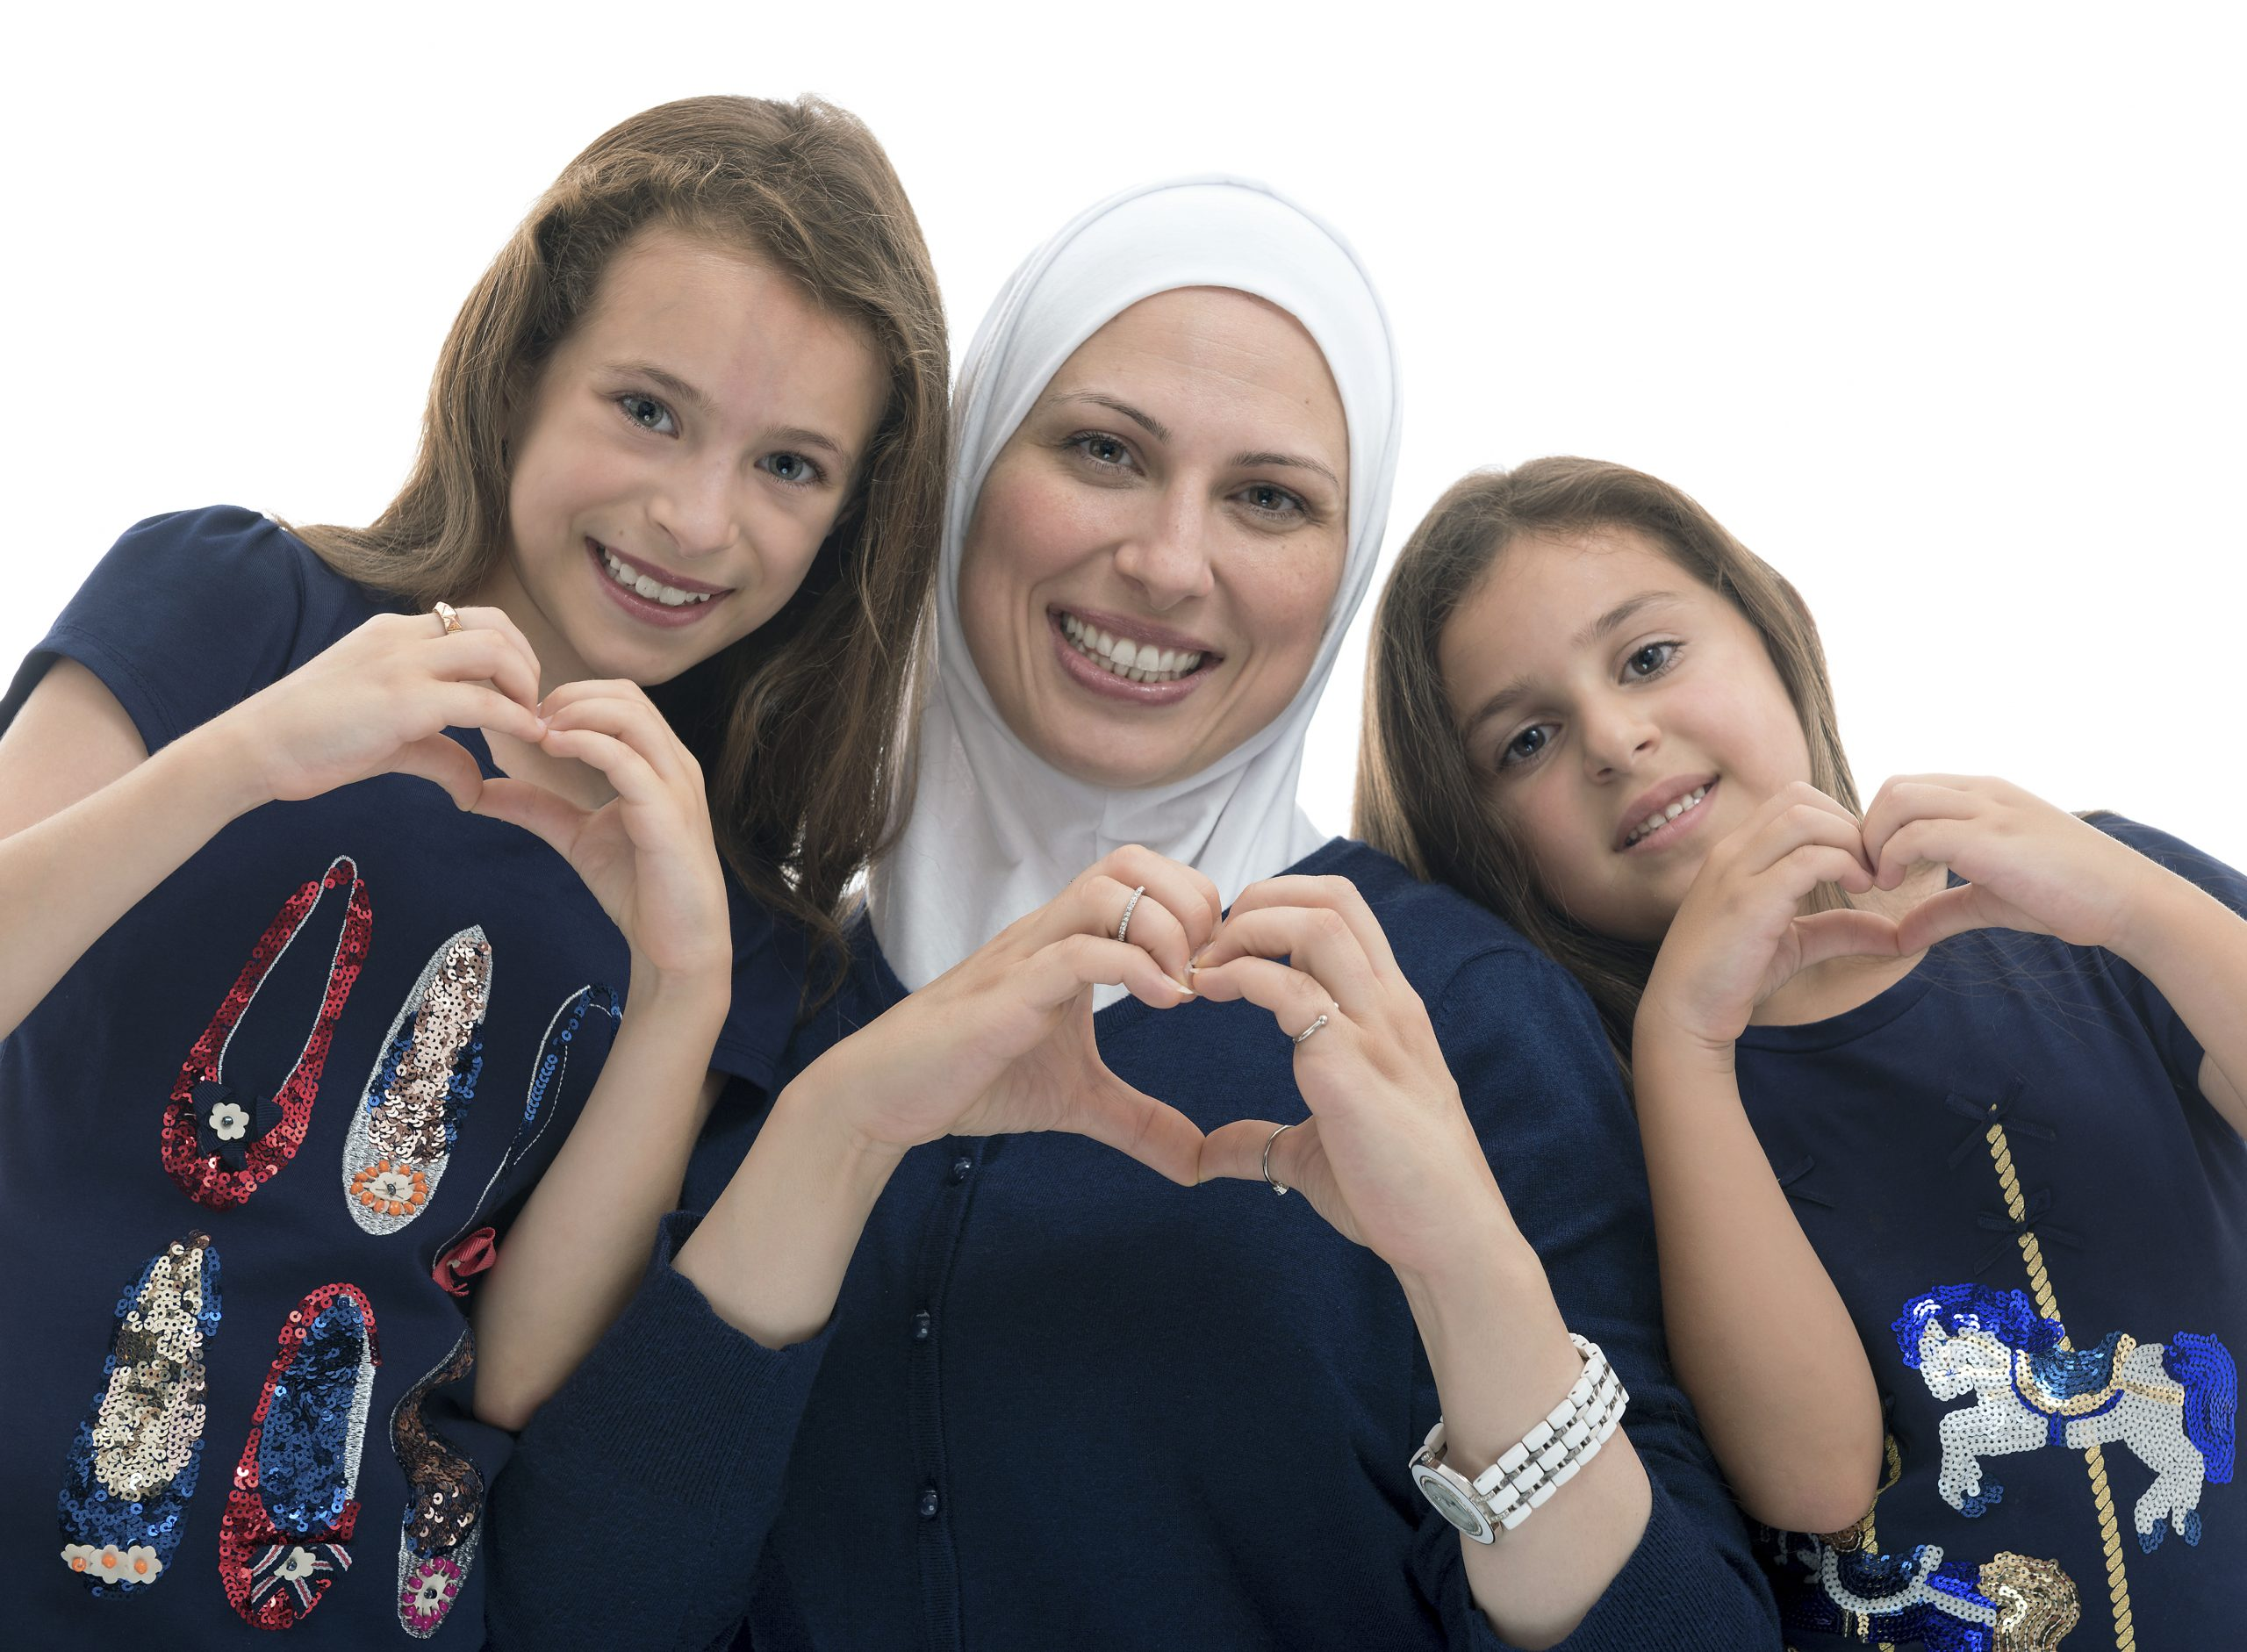 Happy Muslim Female Family, Mother and Her Daughters With Hand Gesture of Heart Love Sign Isolated on White Background